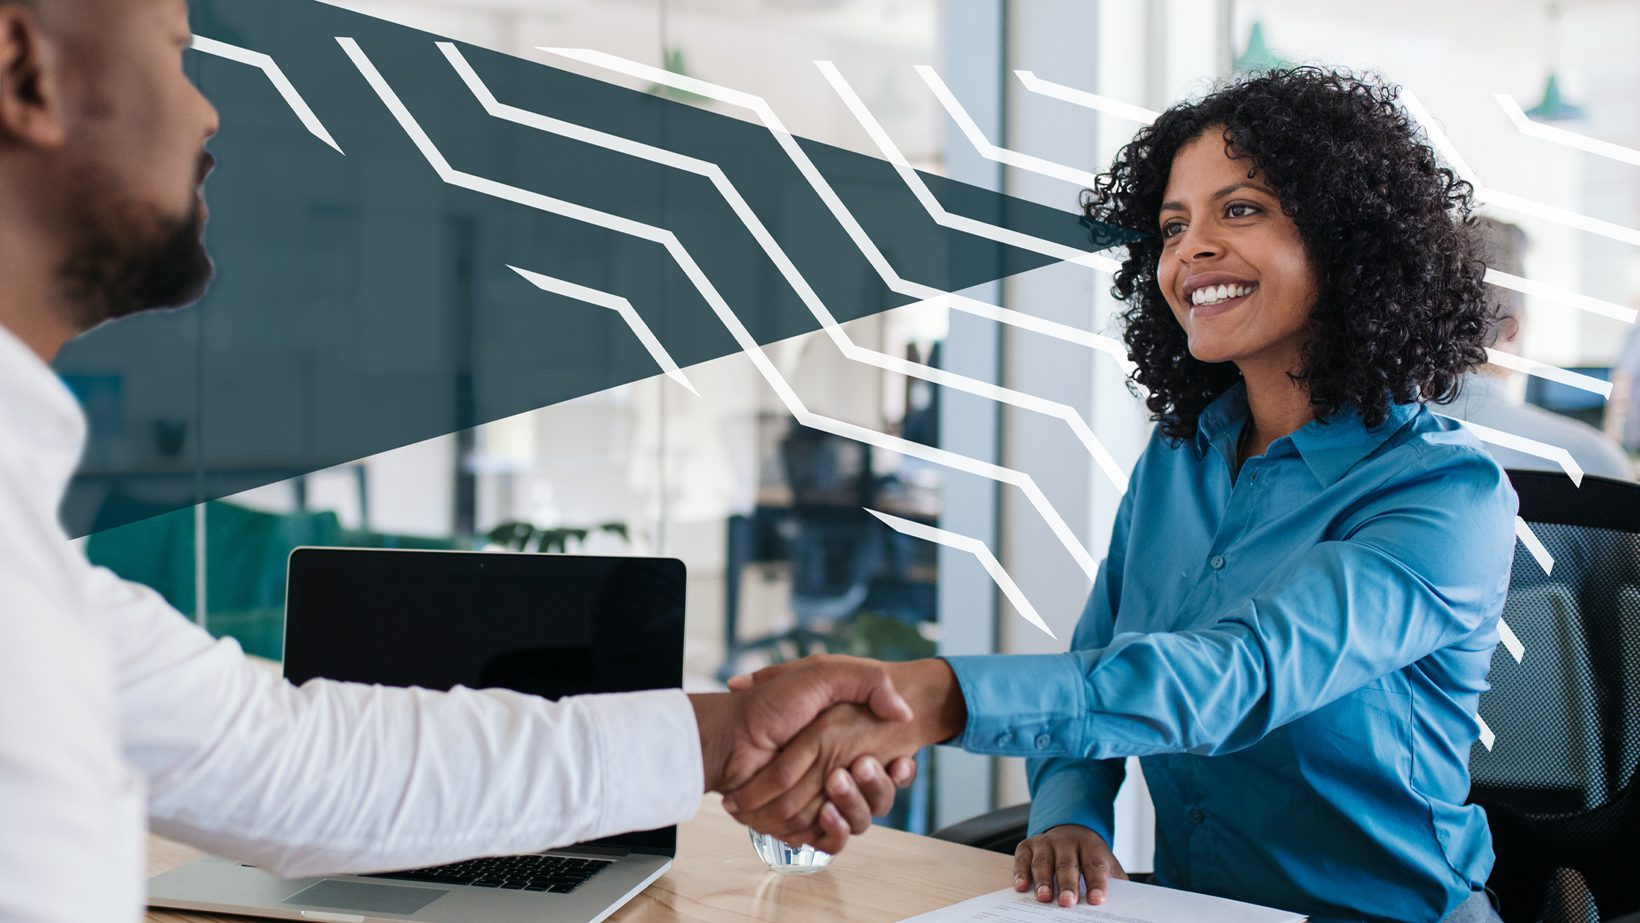 Shaking hands with franchise broker